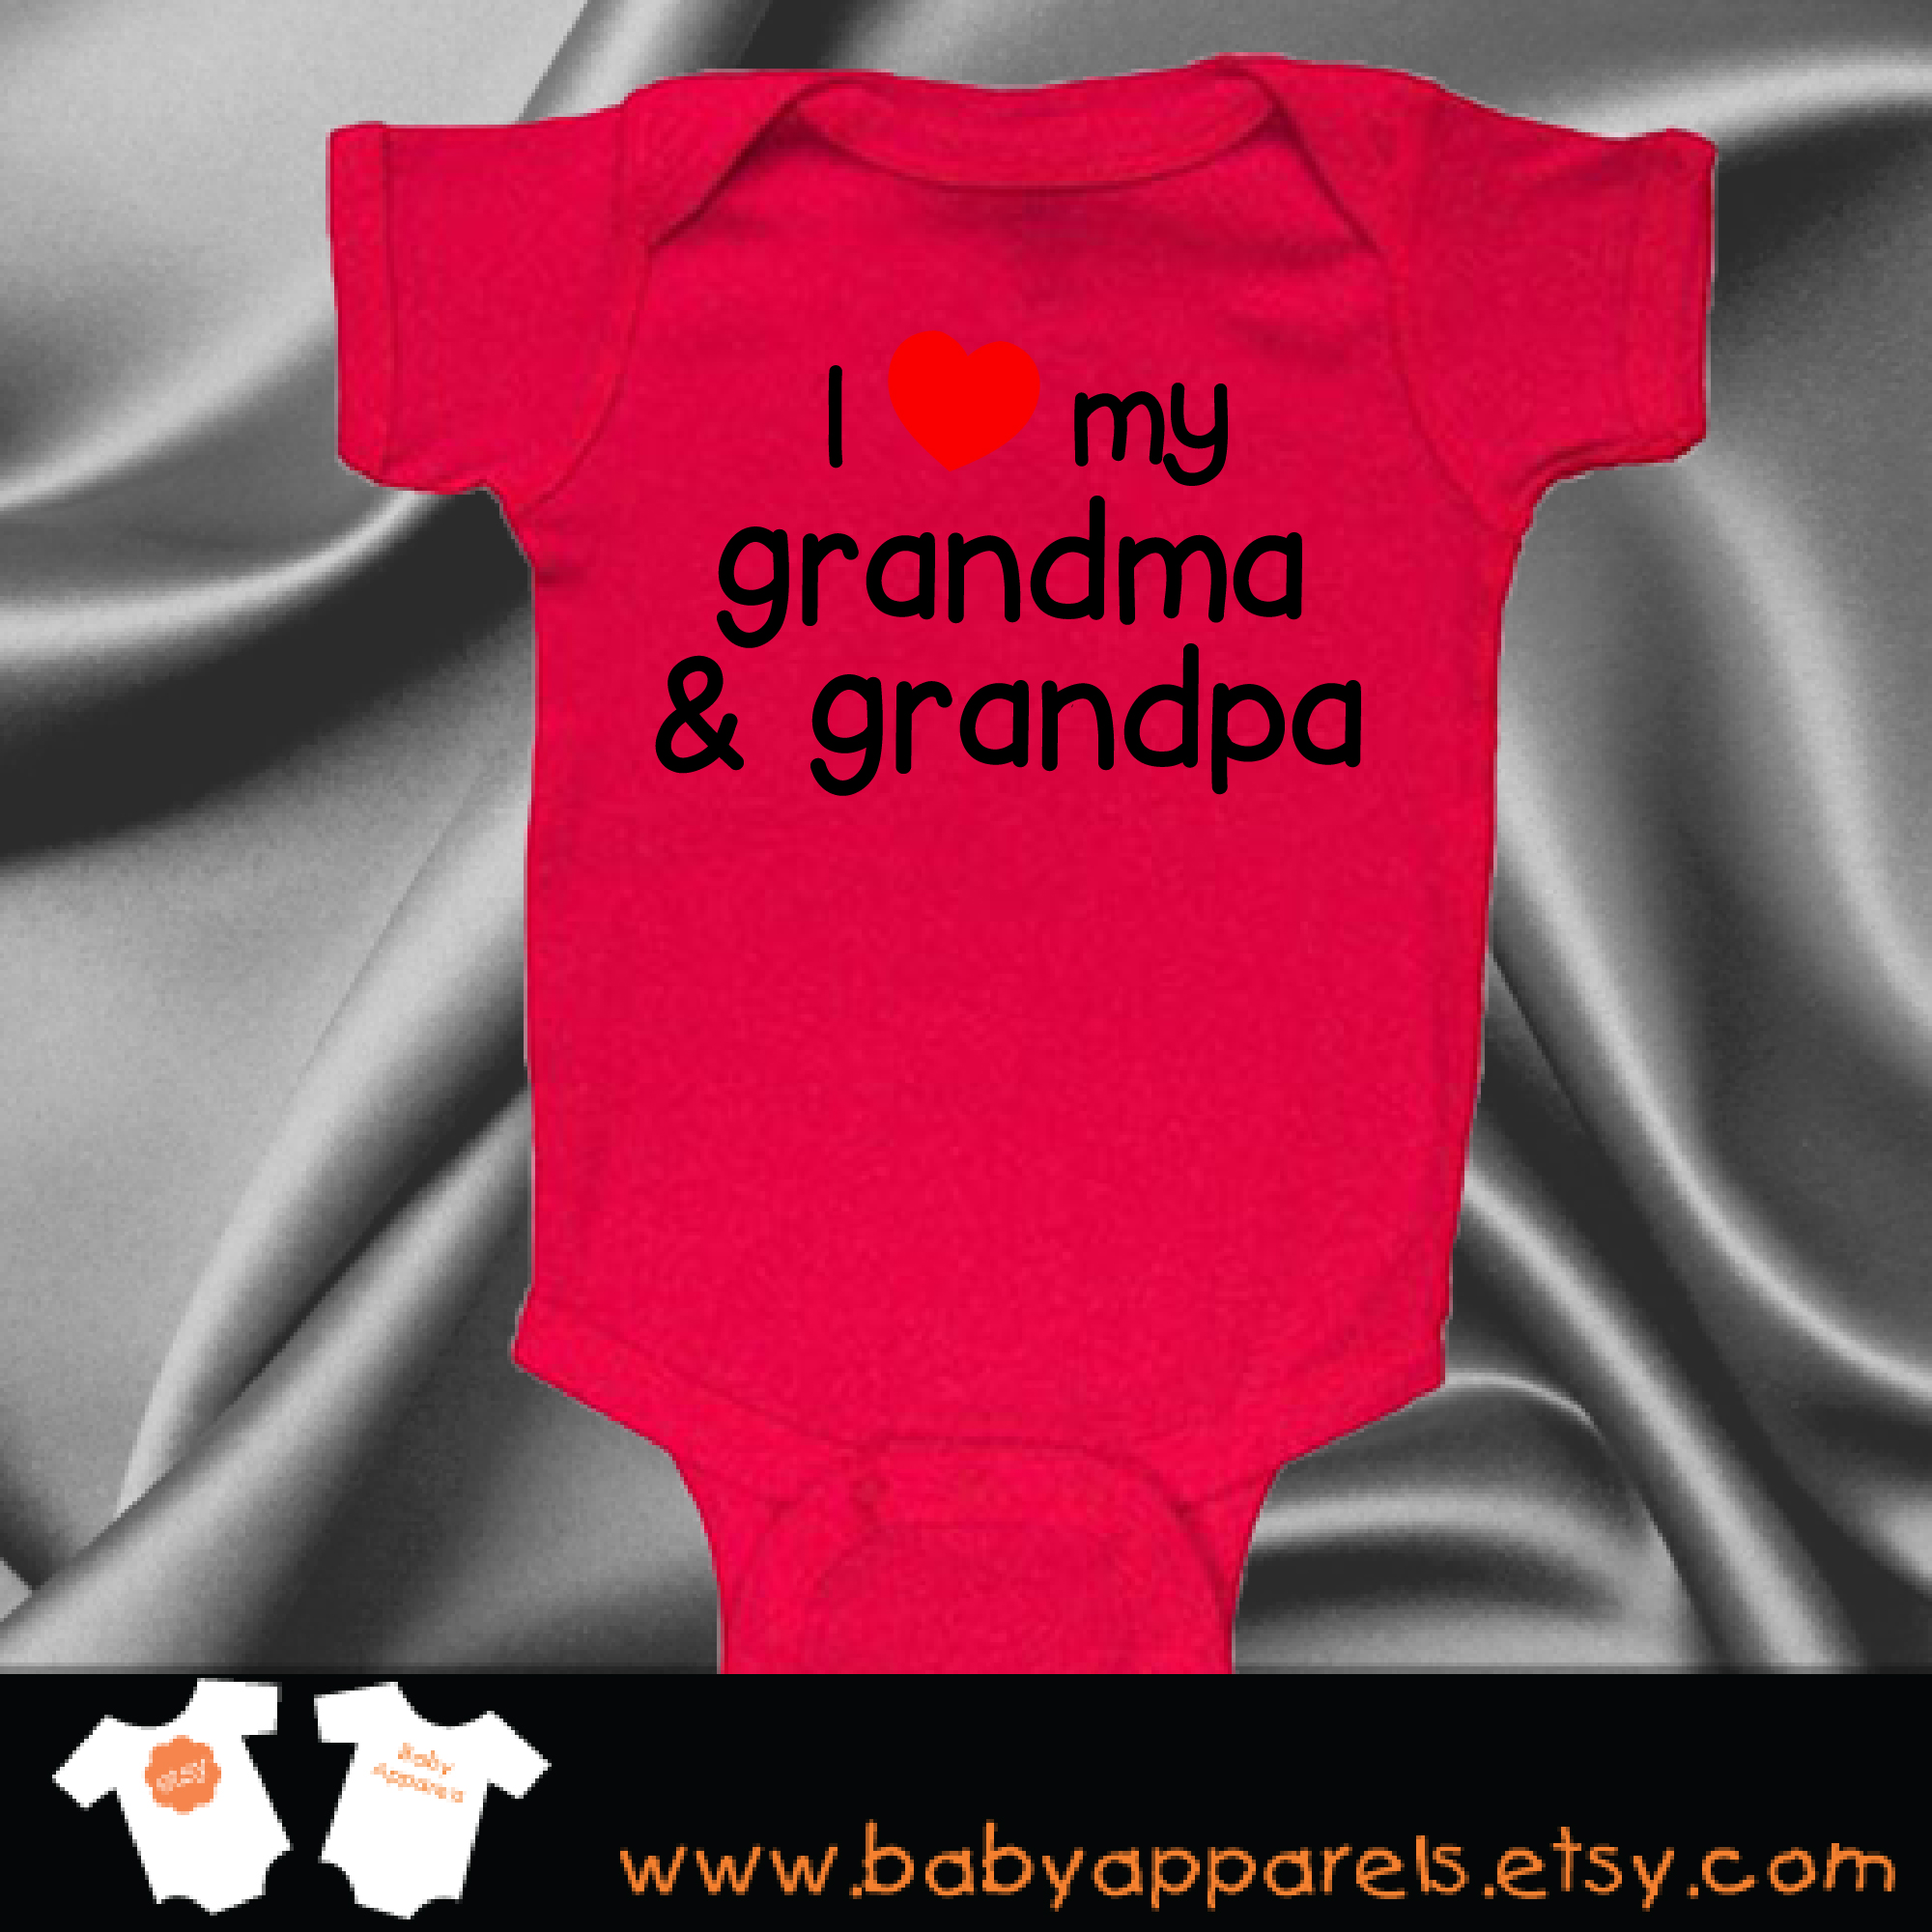 I Love my grandma and Grandpa Baby Clothing